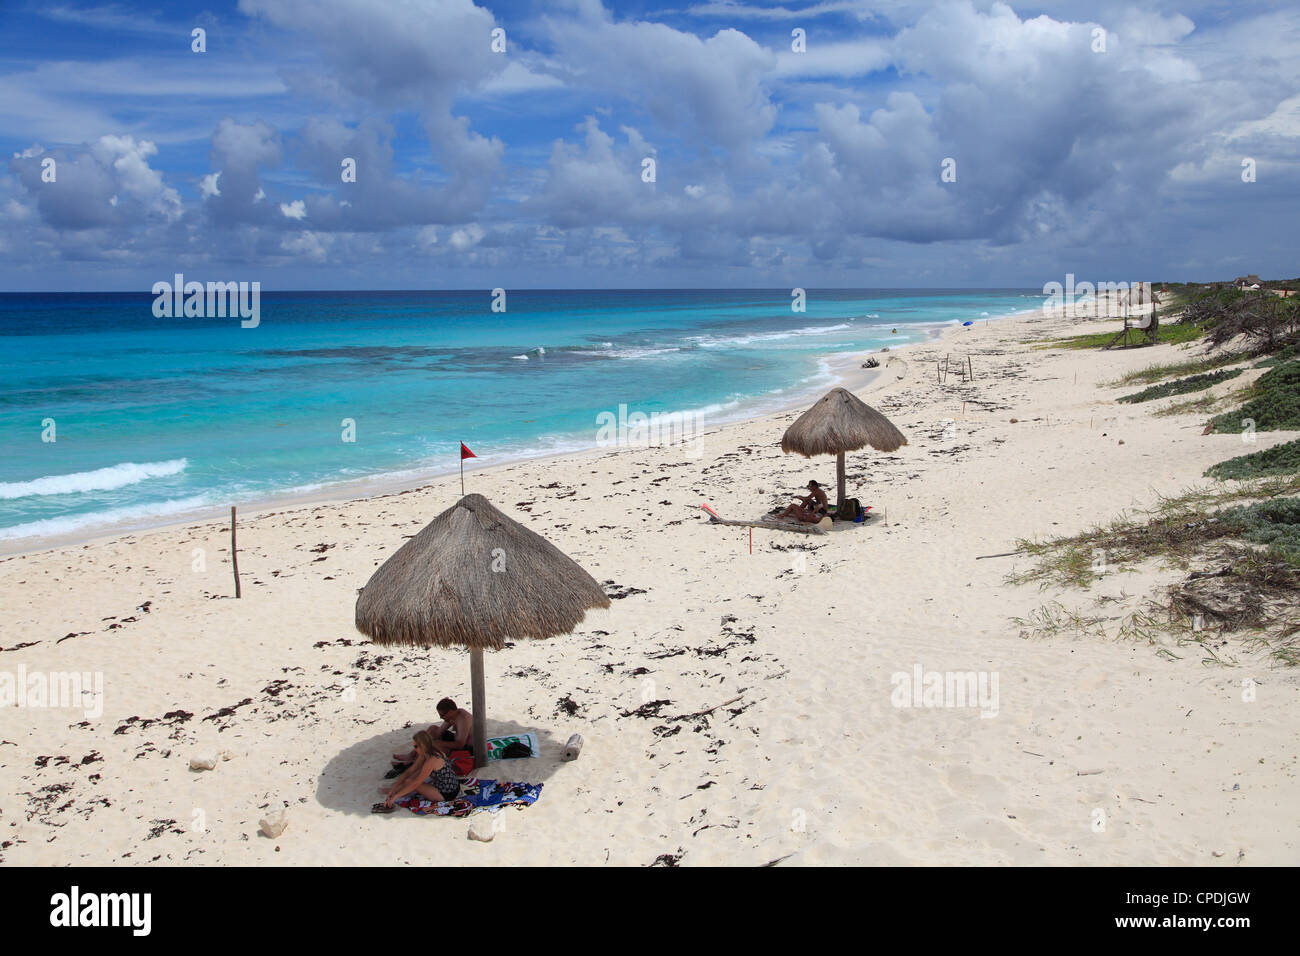 public beach on the east coast cozumel island isla de cozumel